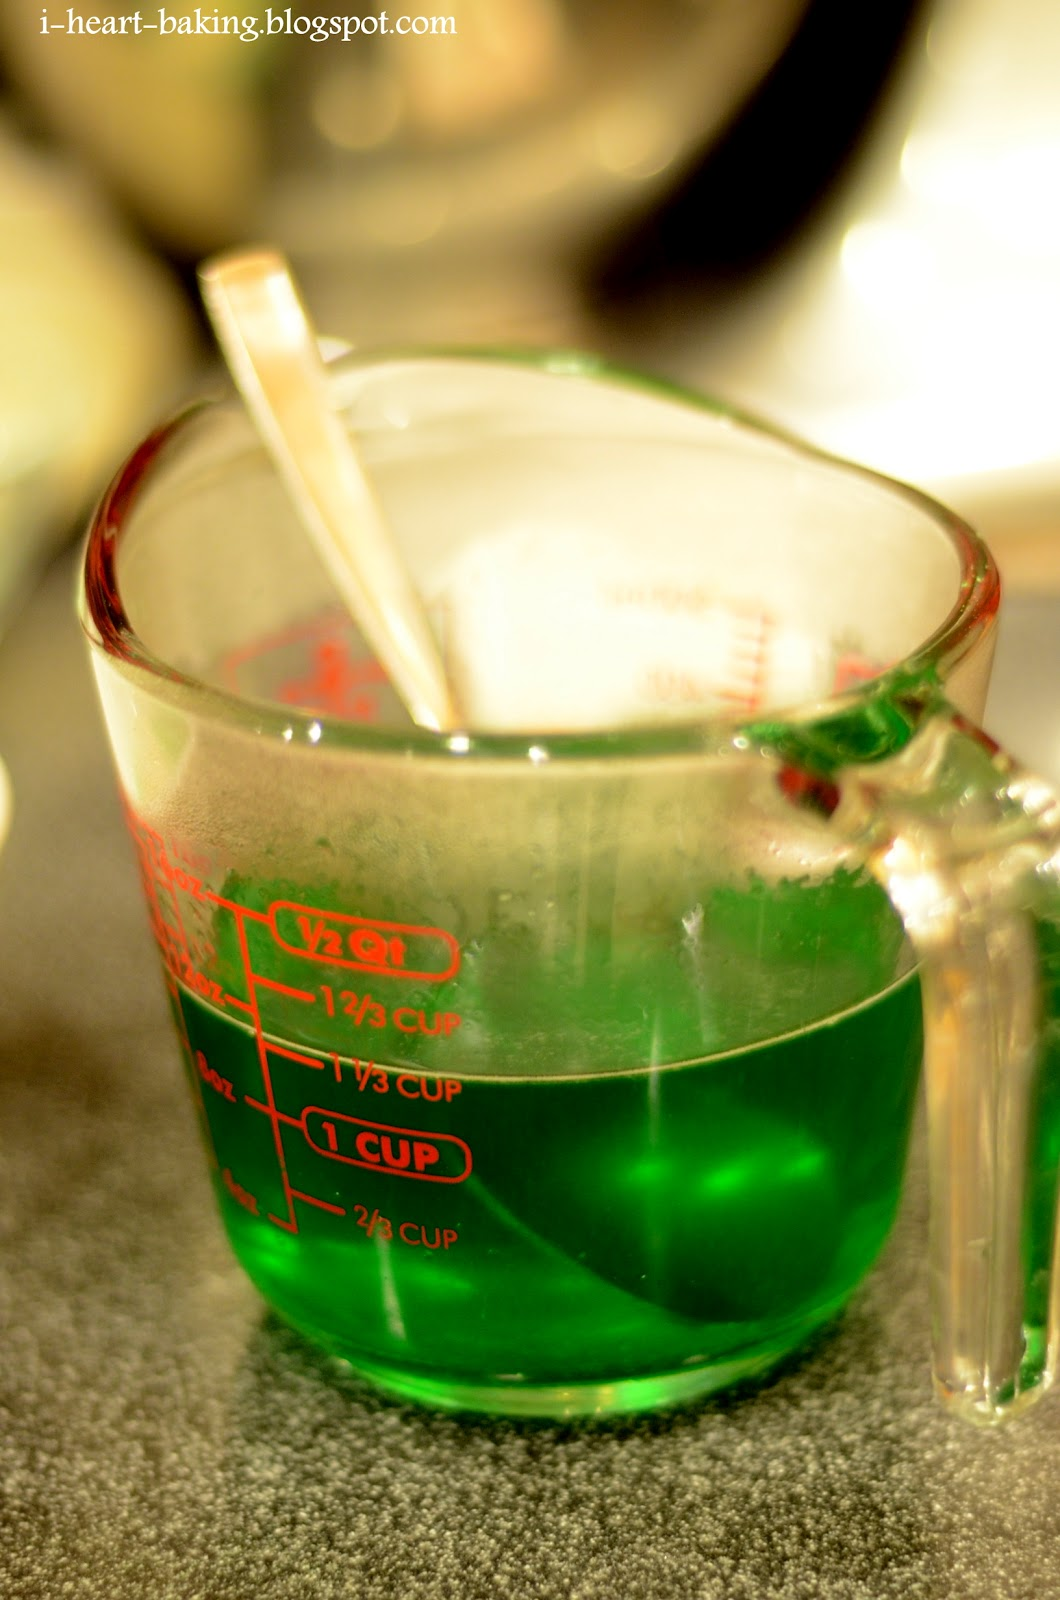 i heart baking!: lime green layer jello for st. patrick's day